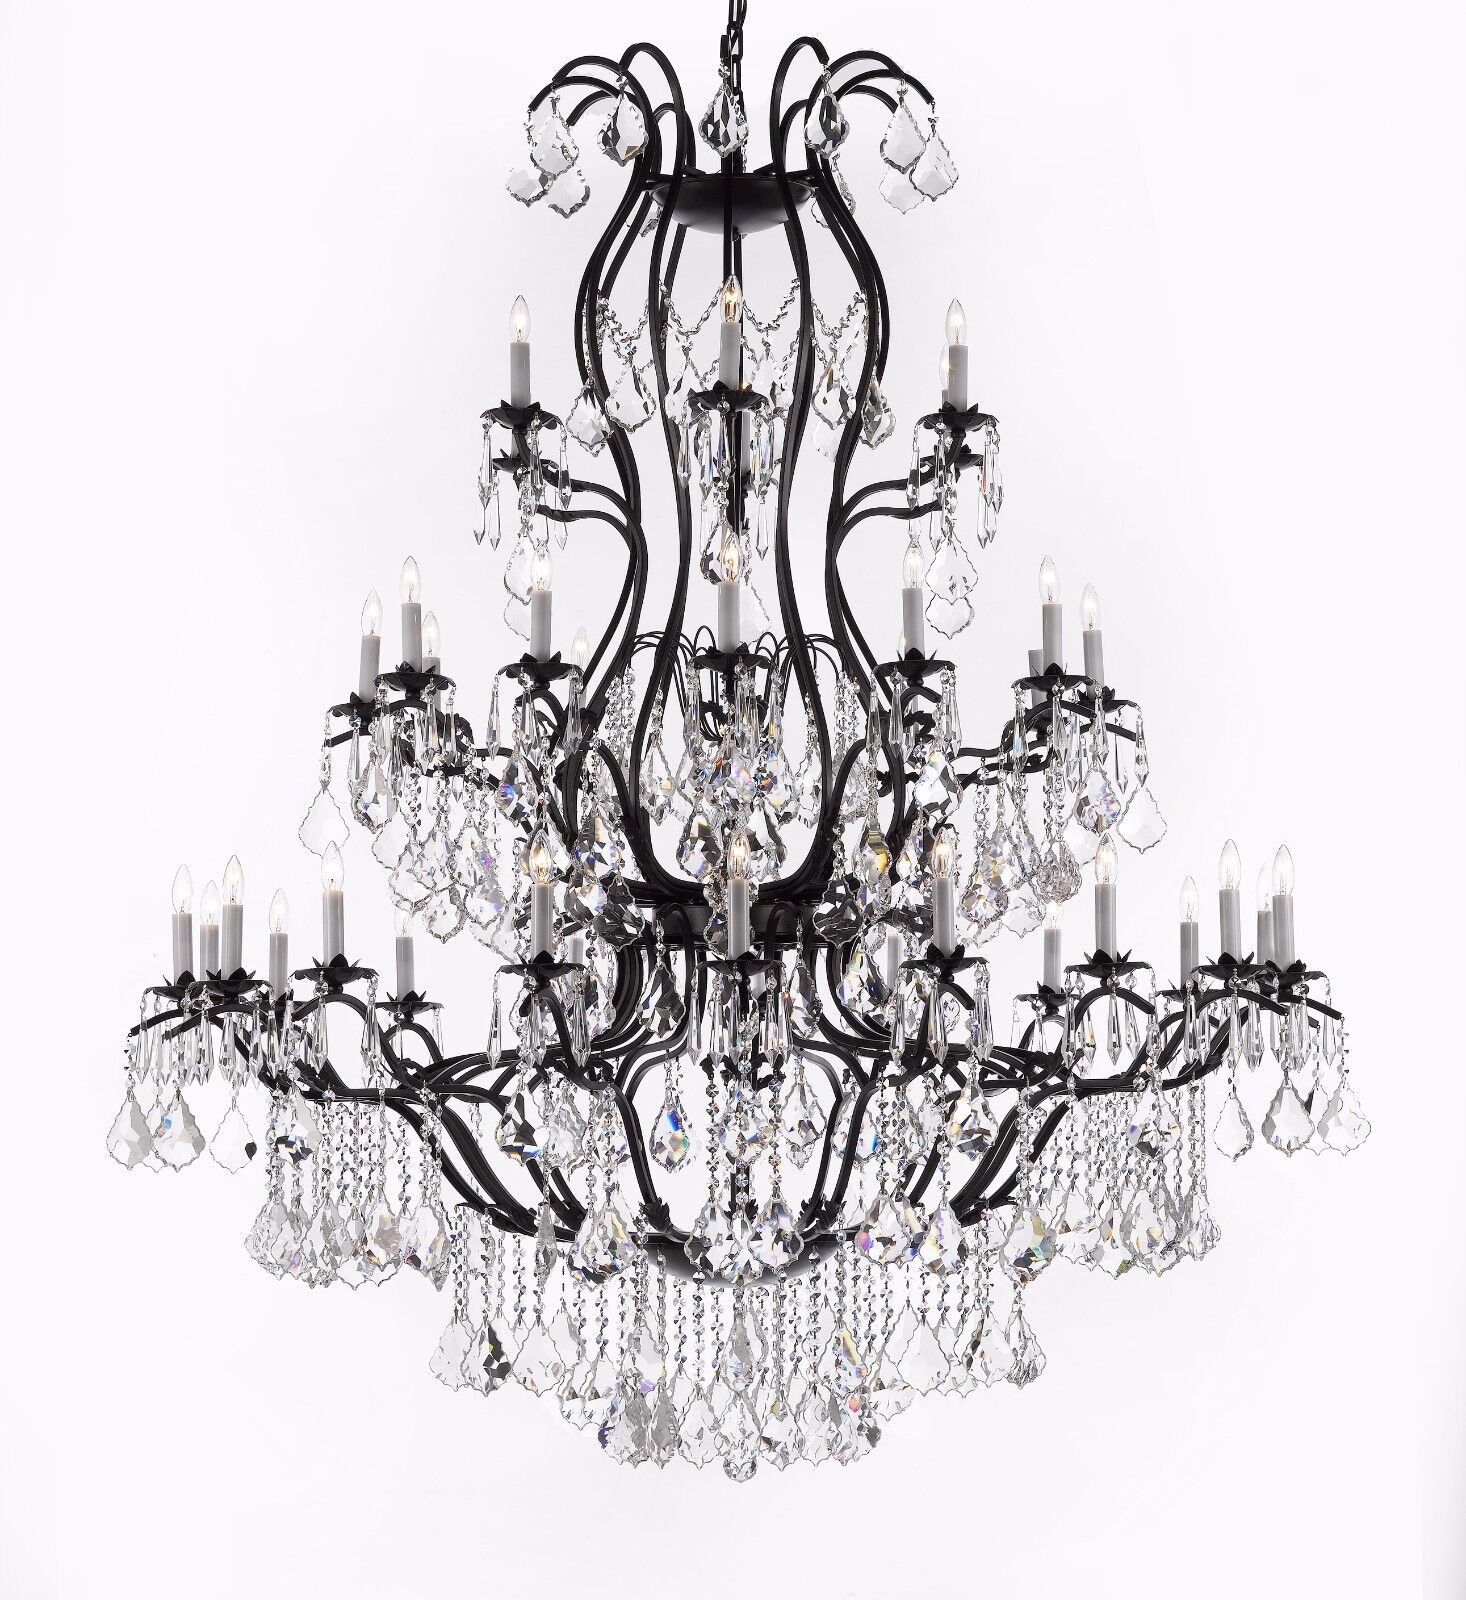 The timeless elegance of this chandelier is sure to lend a special atmosphere anywhere its placed. Assembly Required Lightbulbs not included  sc 1 st  eBay & Large Foyer/Entryway Wrought Iron Chandelier Lighting W/Crystal H60 ...